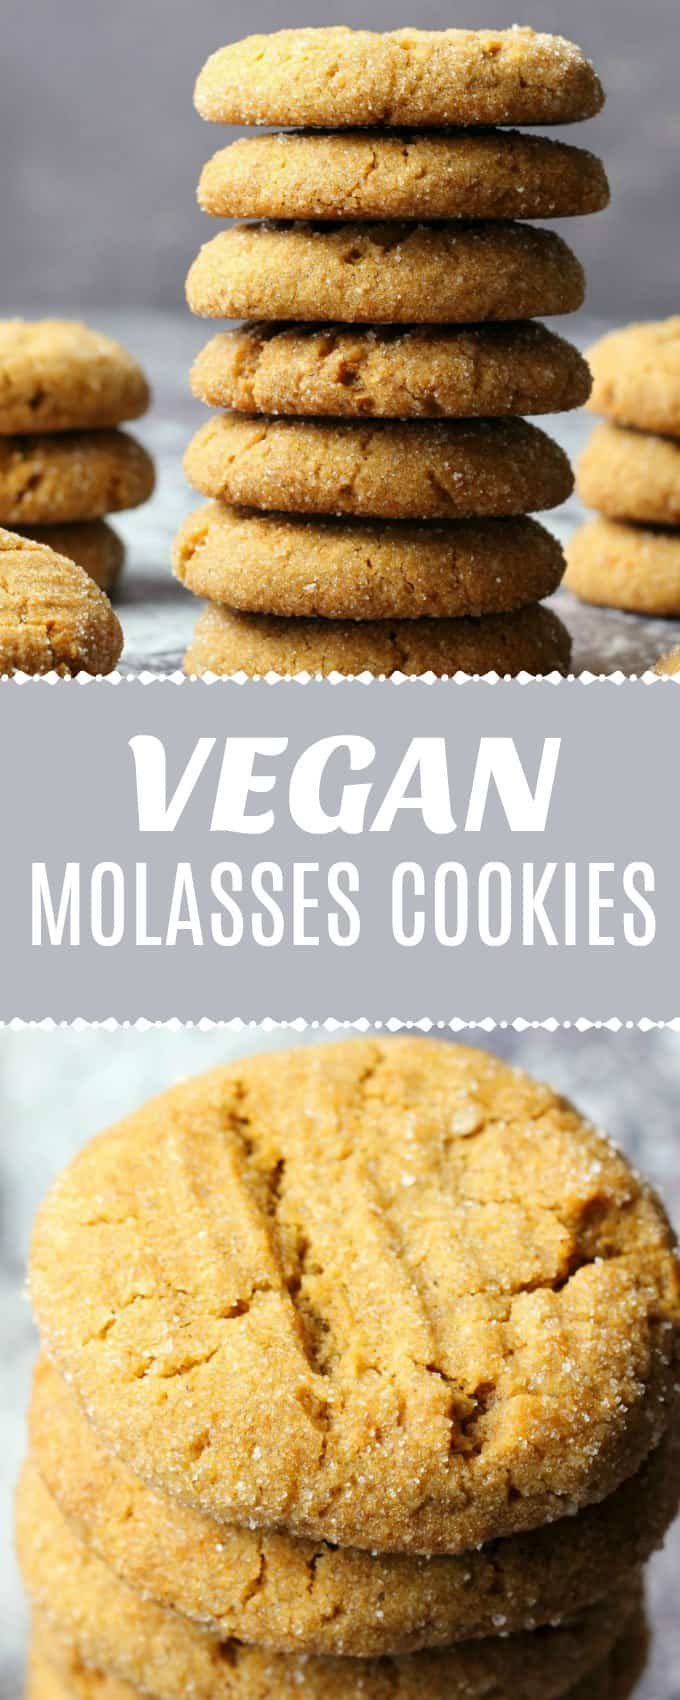 Vegan molasses cookies that are wonderfully soft and chewy, deliciously spiced with perfect molasses flavor. Super easy recipe and an ideal holiday cookie! | lovingitvegan.com